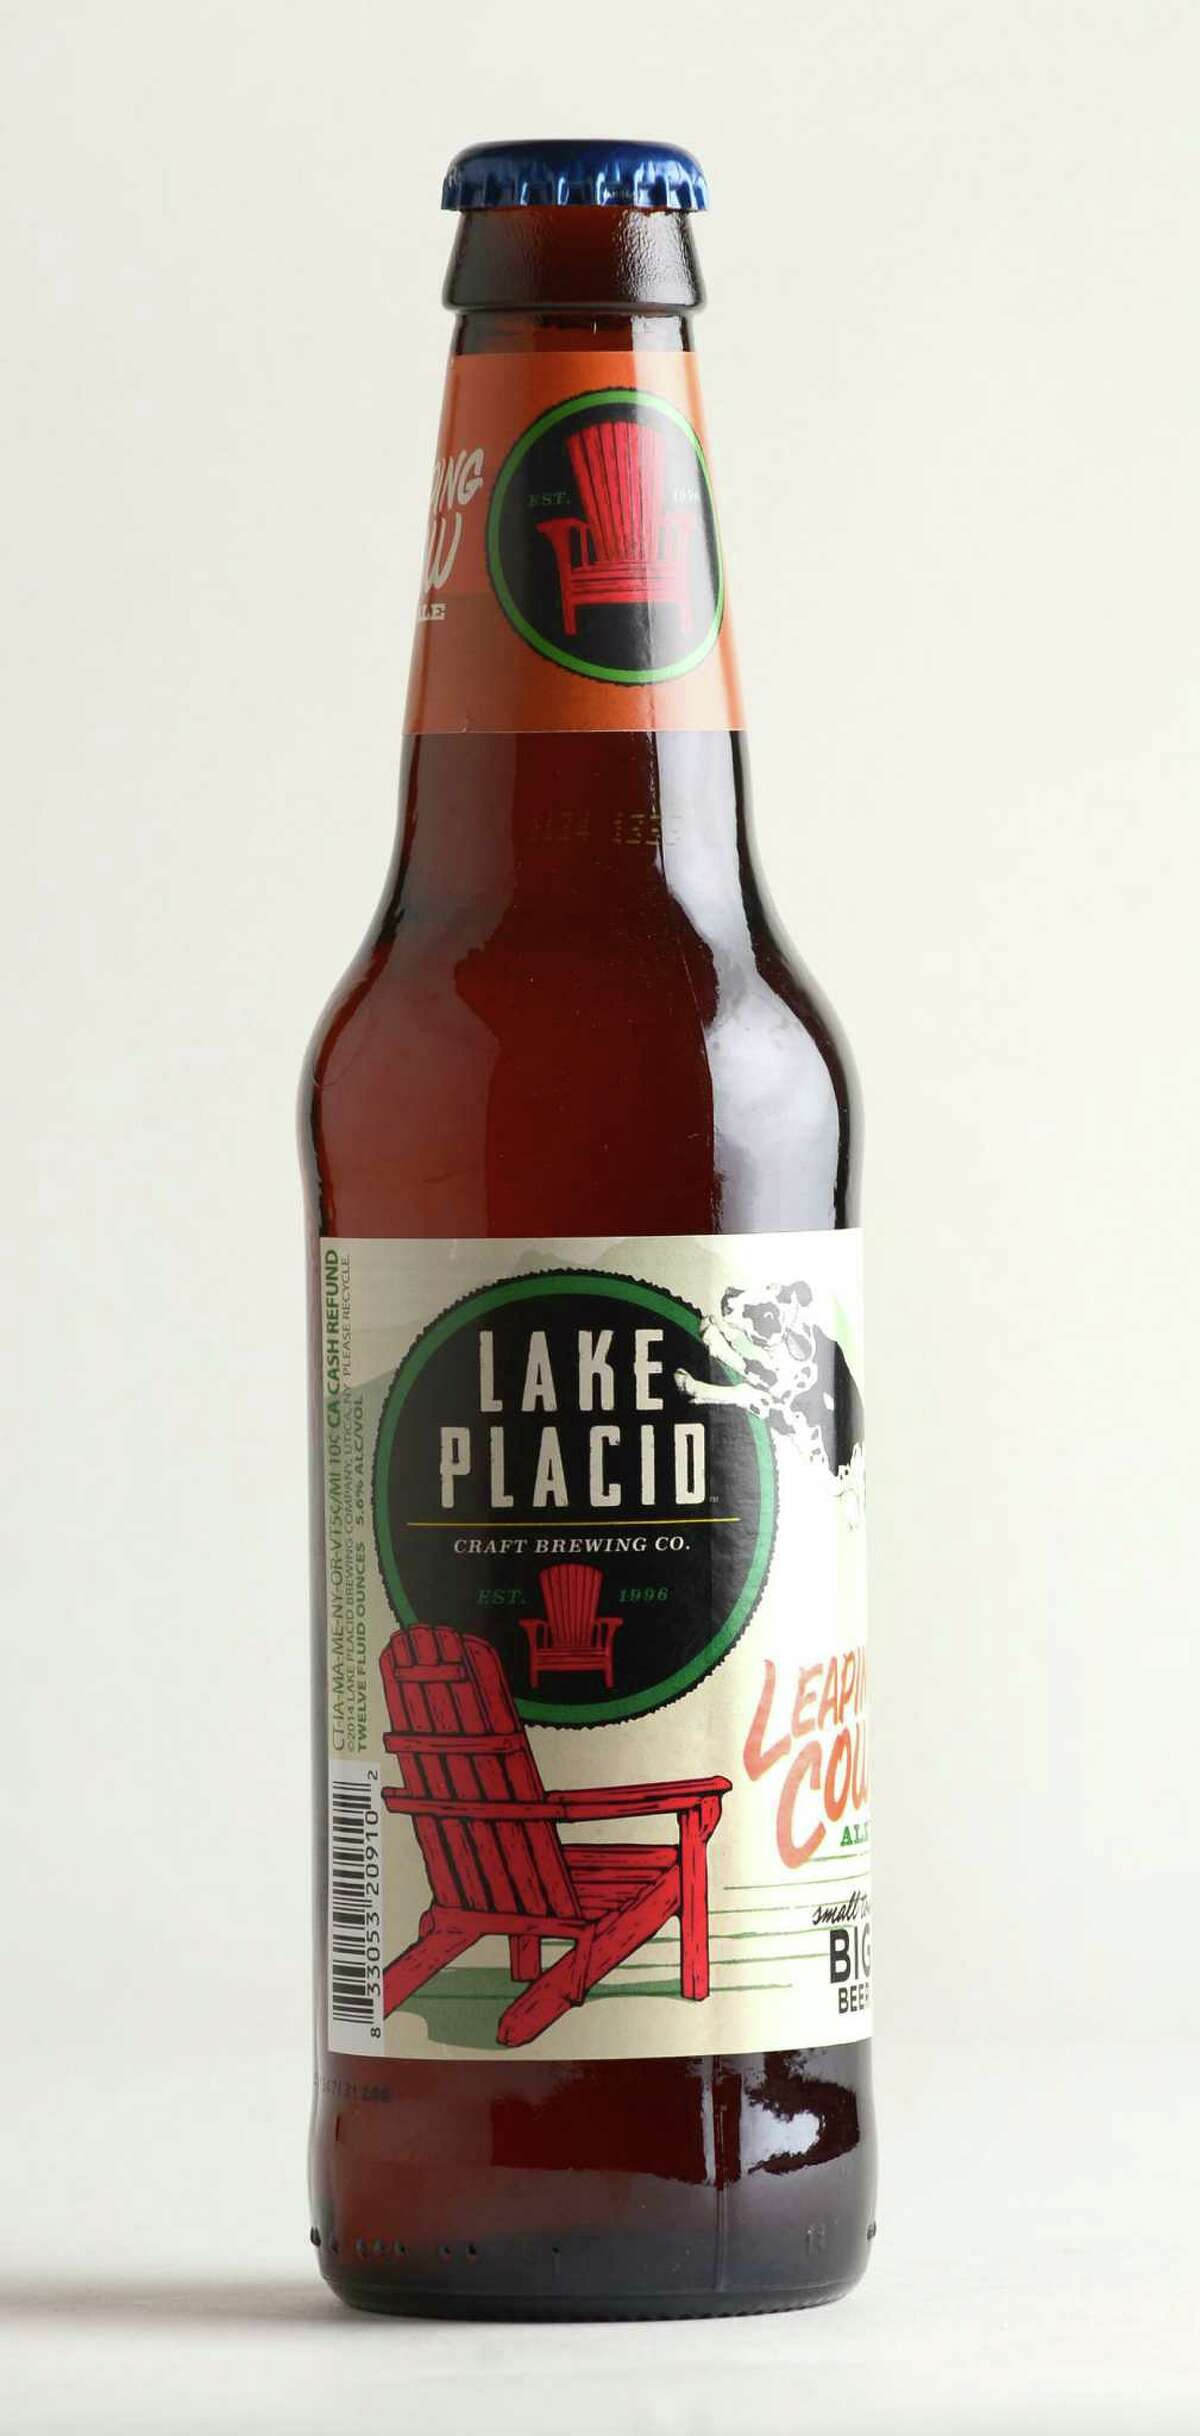 Lake Placid beer Friday, June 6, 2014, at the Times Union in Colonie, N.Y. (Selby Smith / Special to the Times Union)